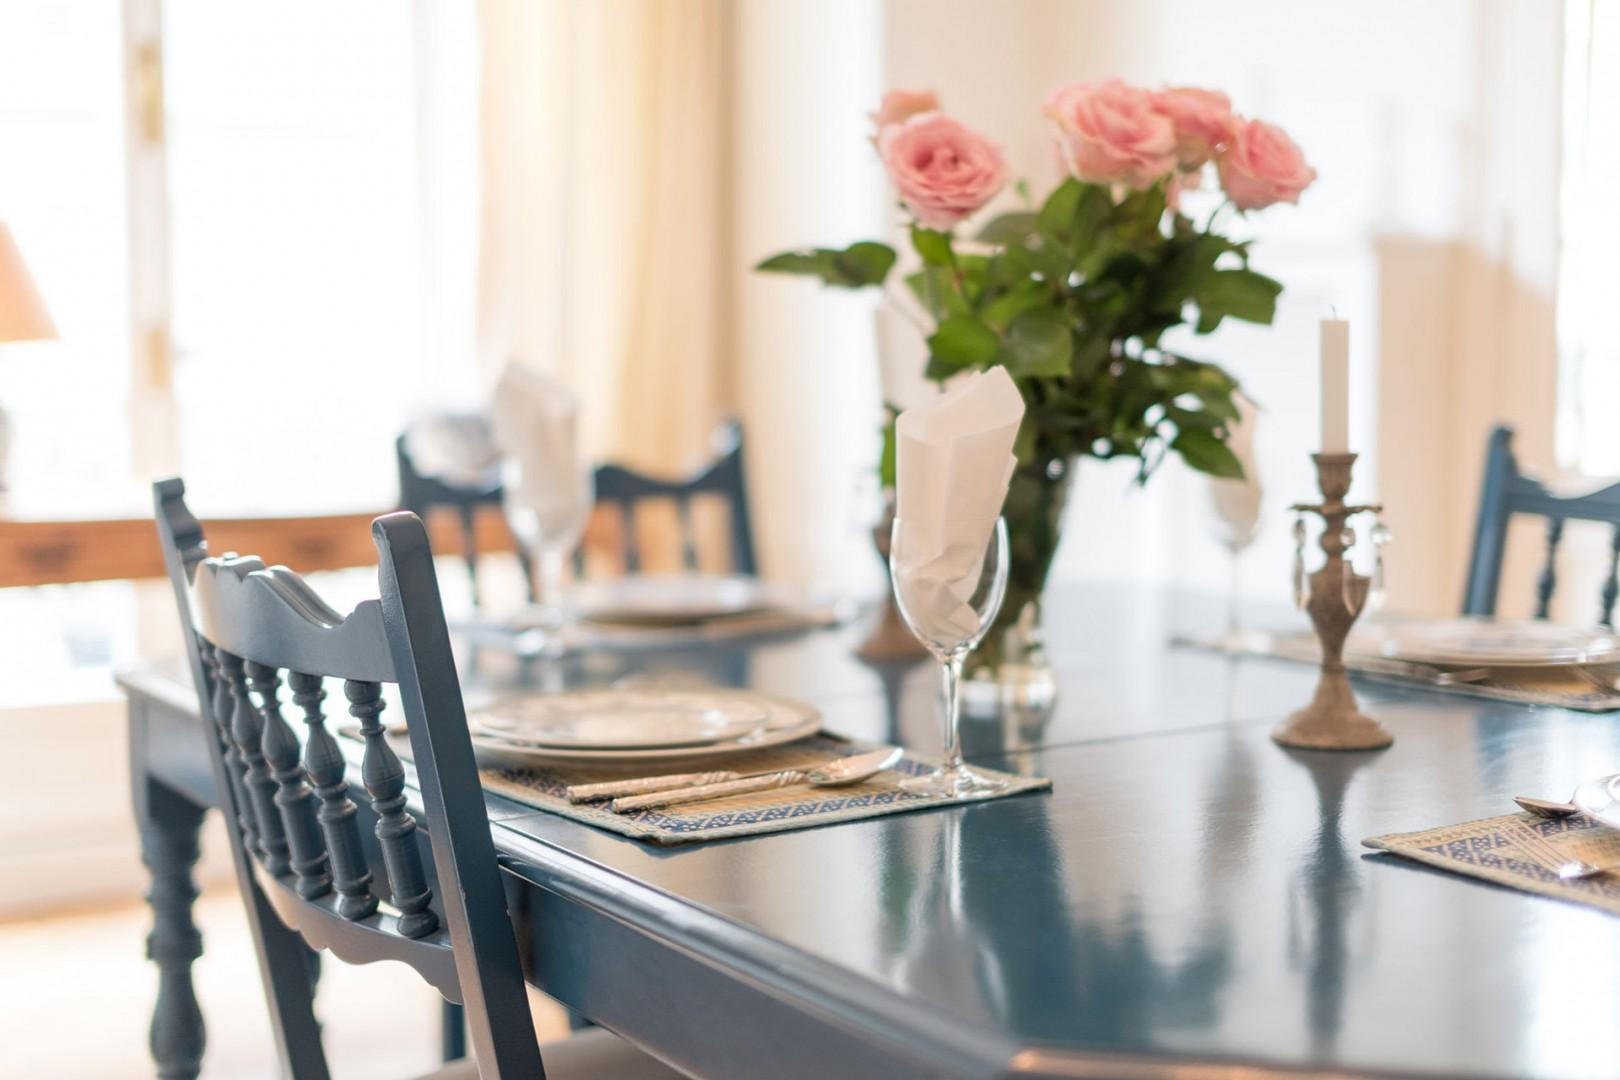 Enjoy French-style meals in the comfort of home.